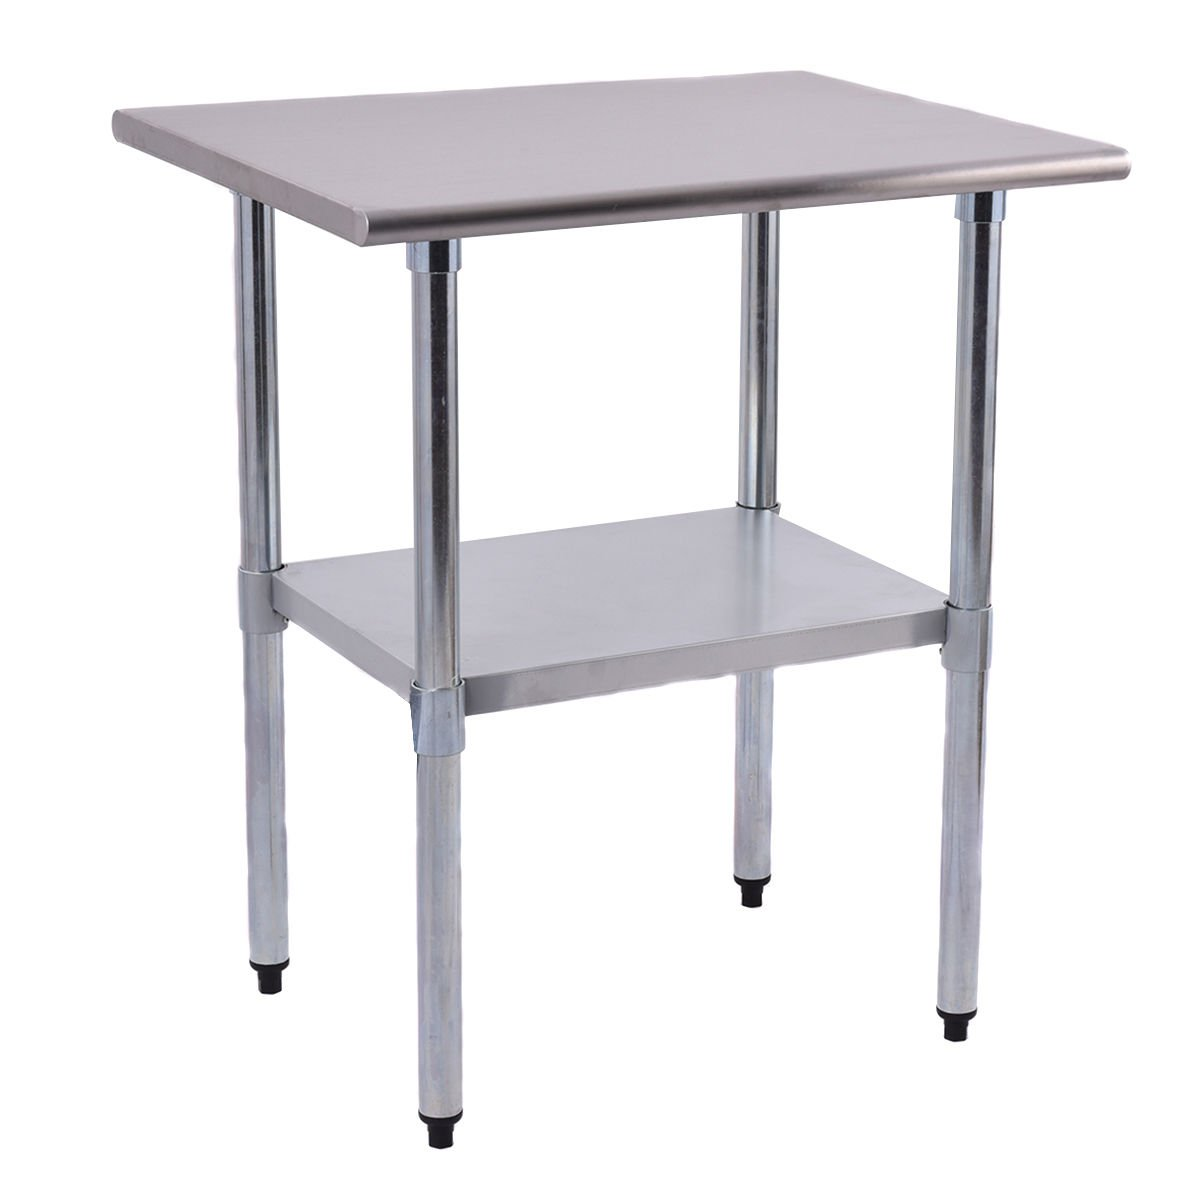 New 24'' x 30'' Stainless Steel Work Prep Table Commercial Kitchen Restaurant